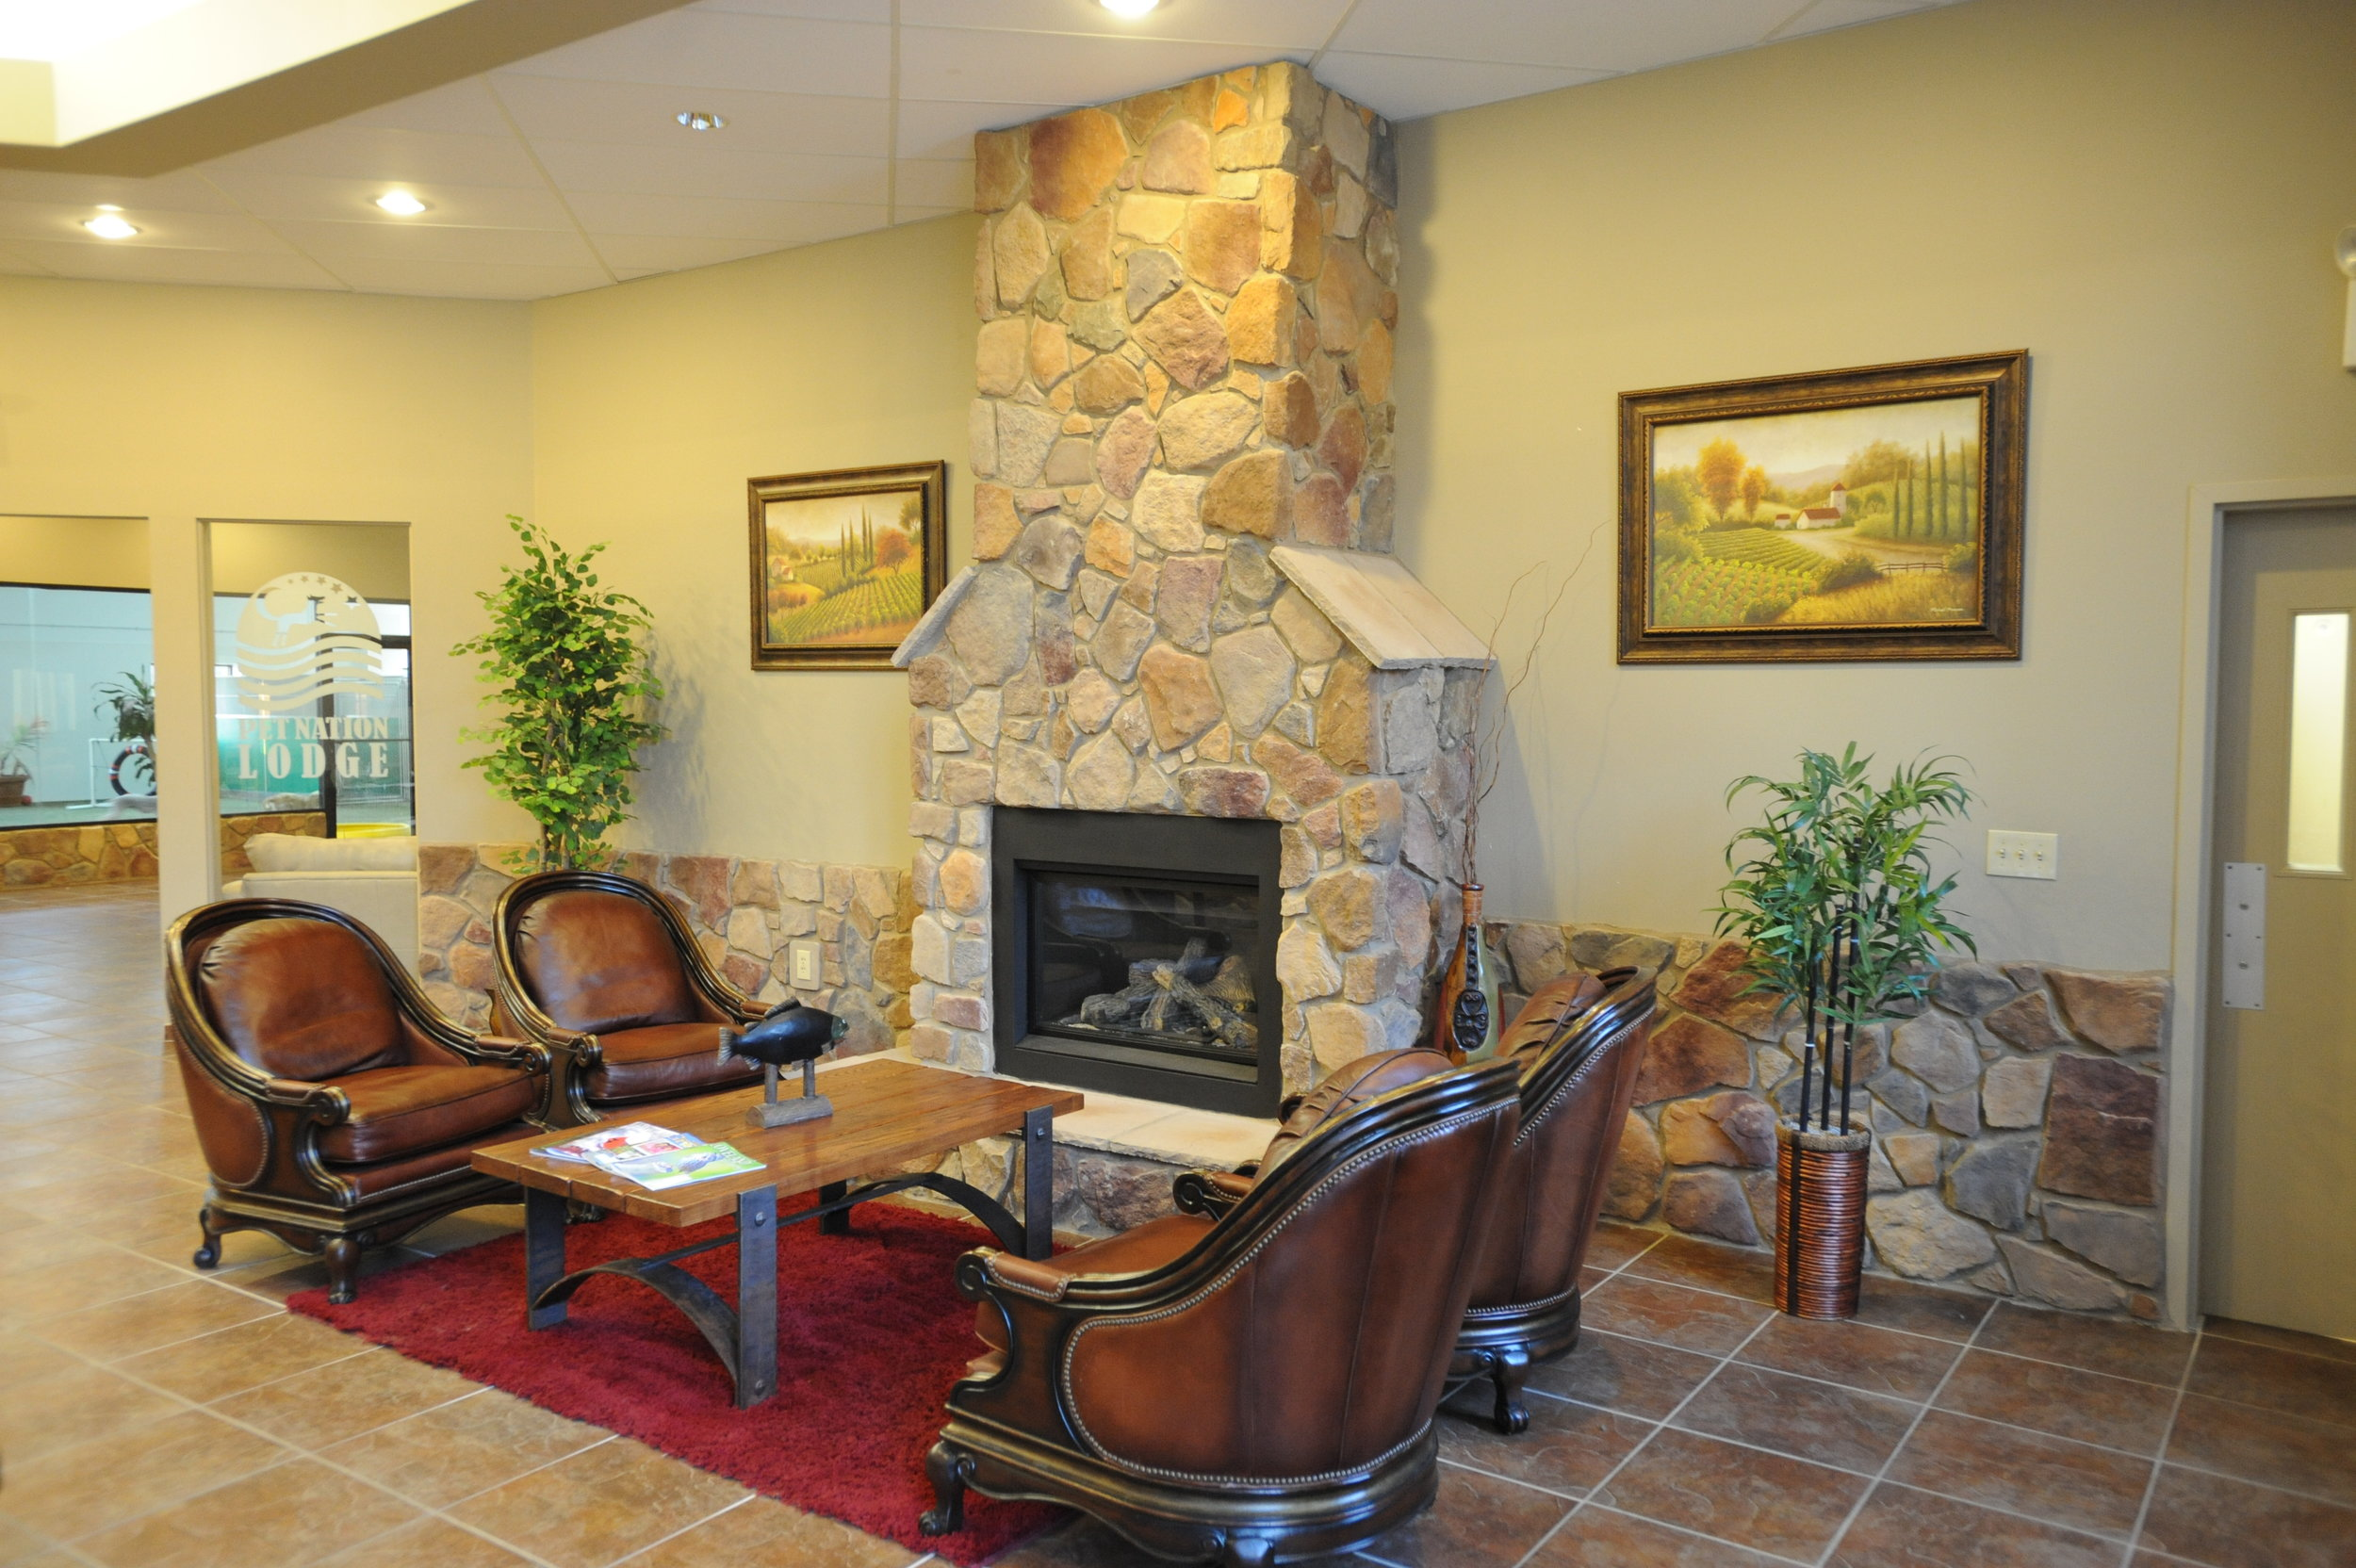 Pet Nation Lodge's lobby is always warm and welcoming.